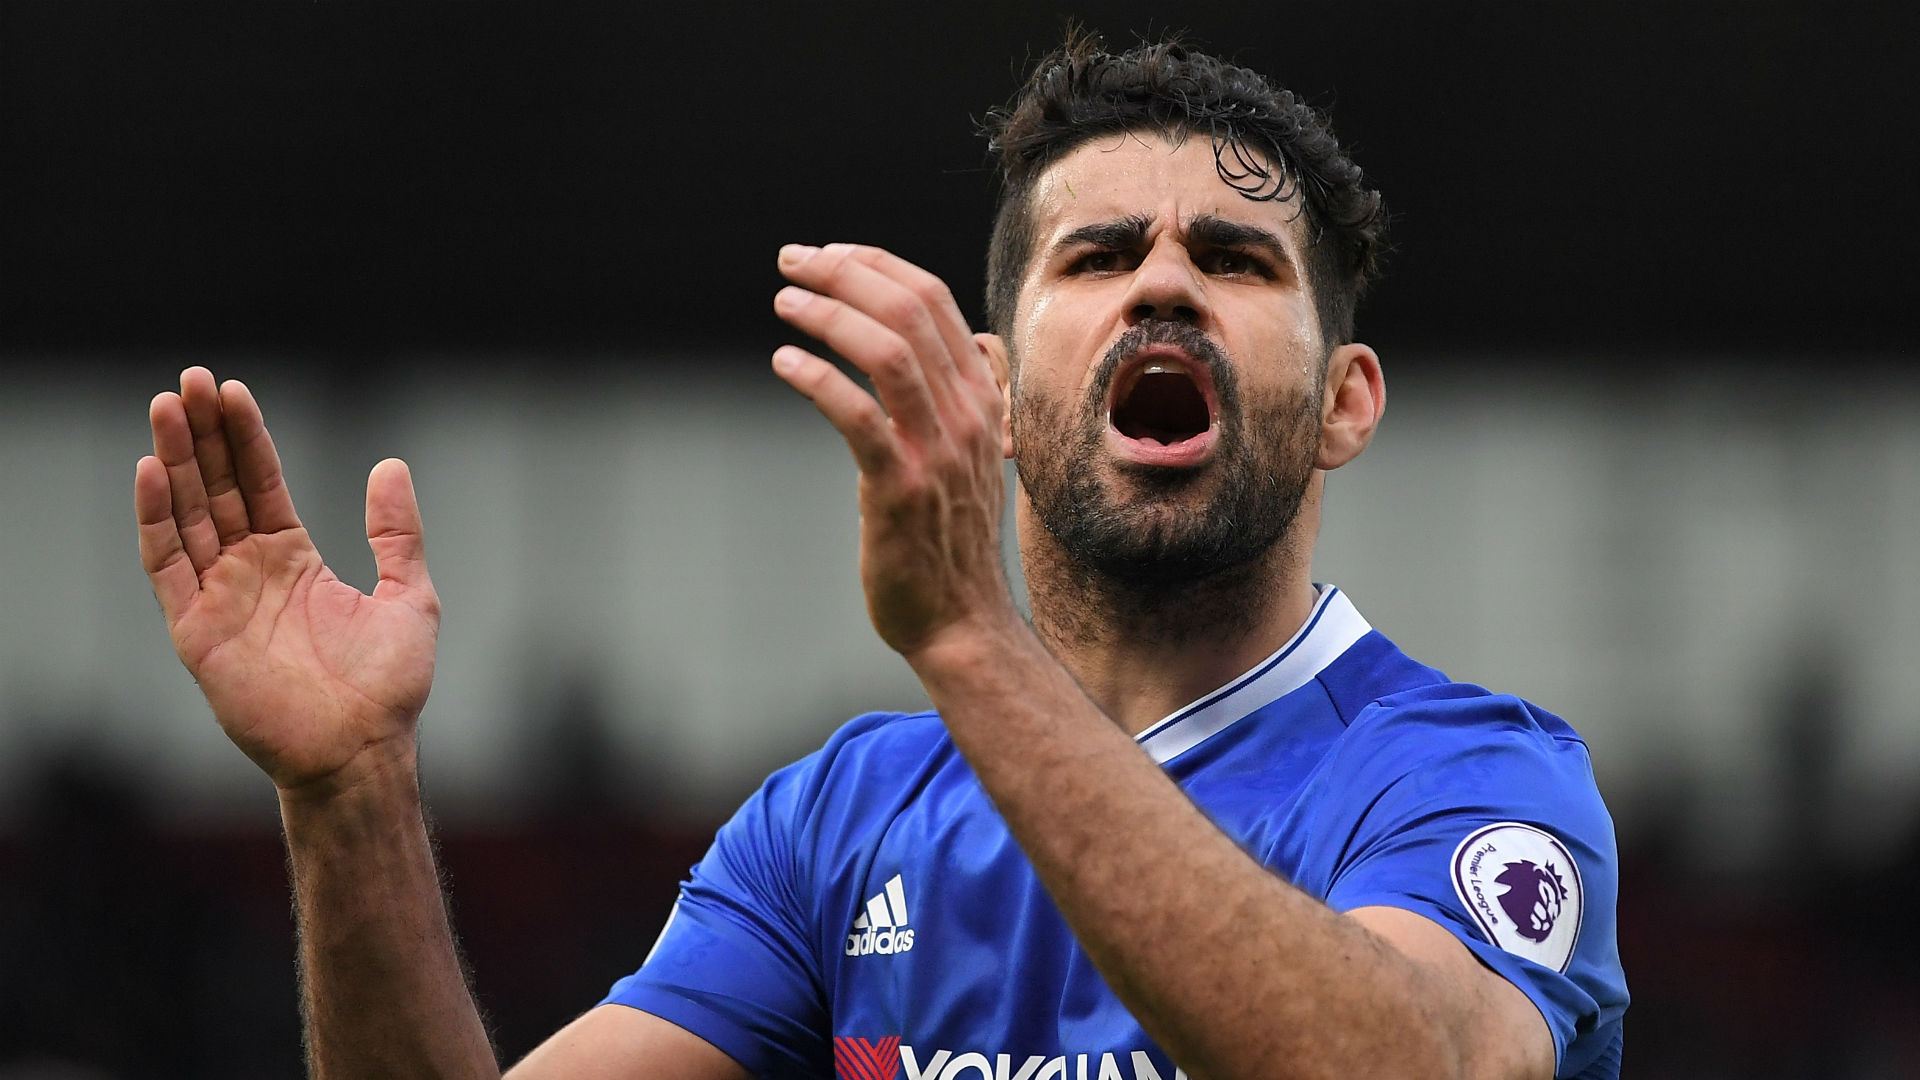 AC Milan had talks with Diego Costa's agent CEO confirms